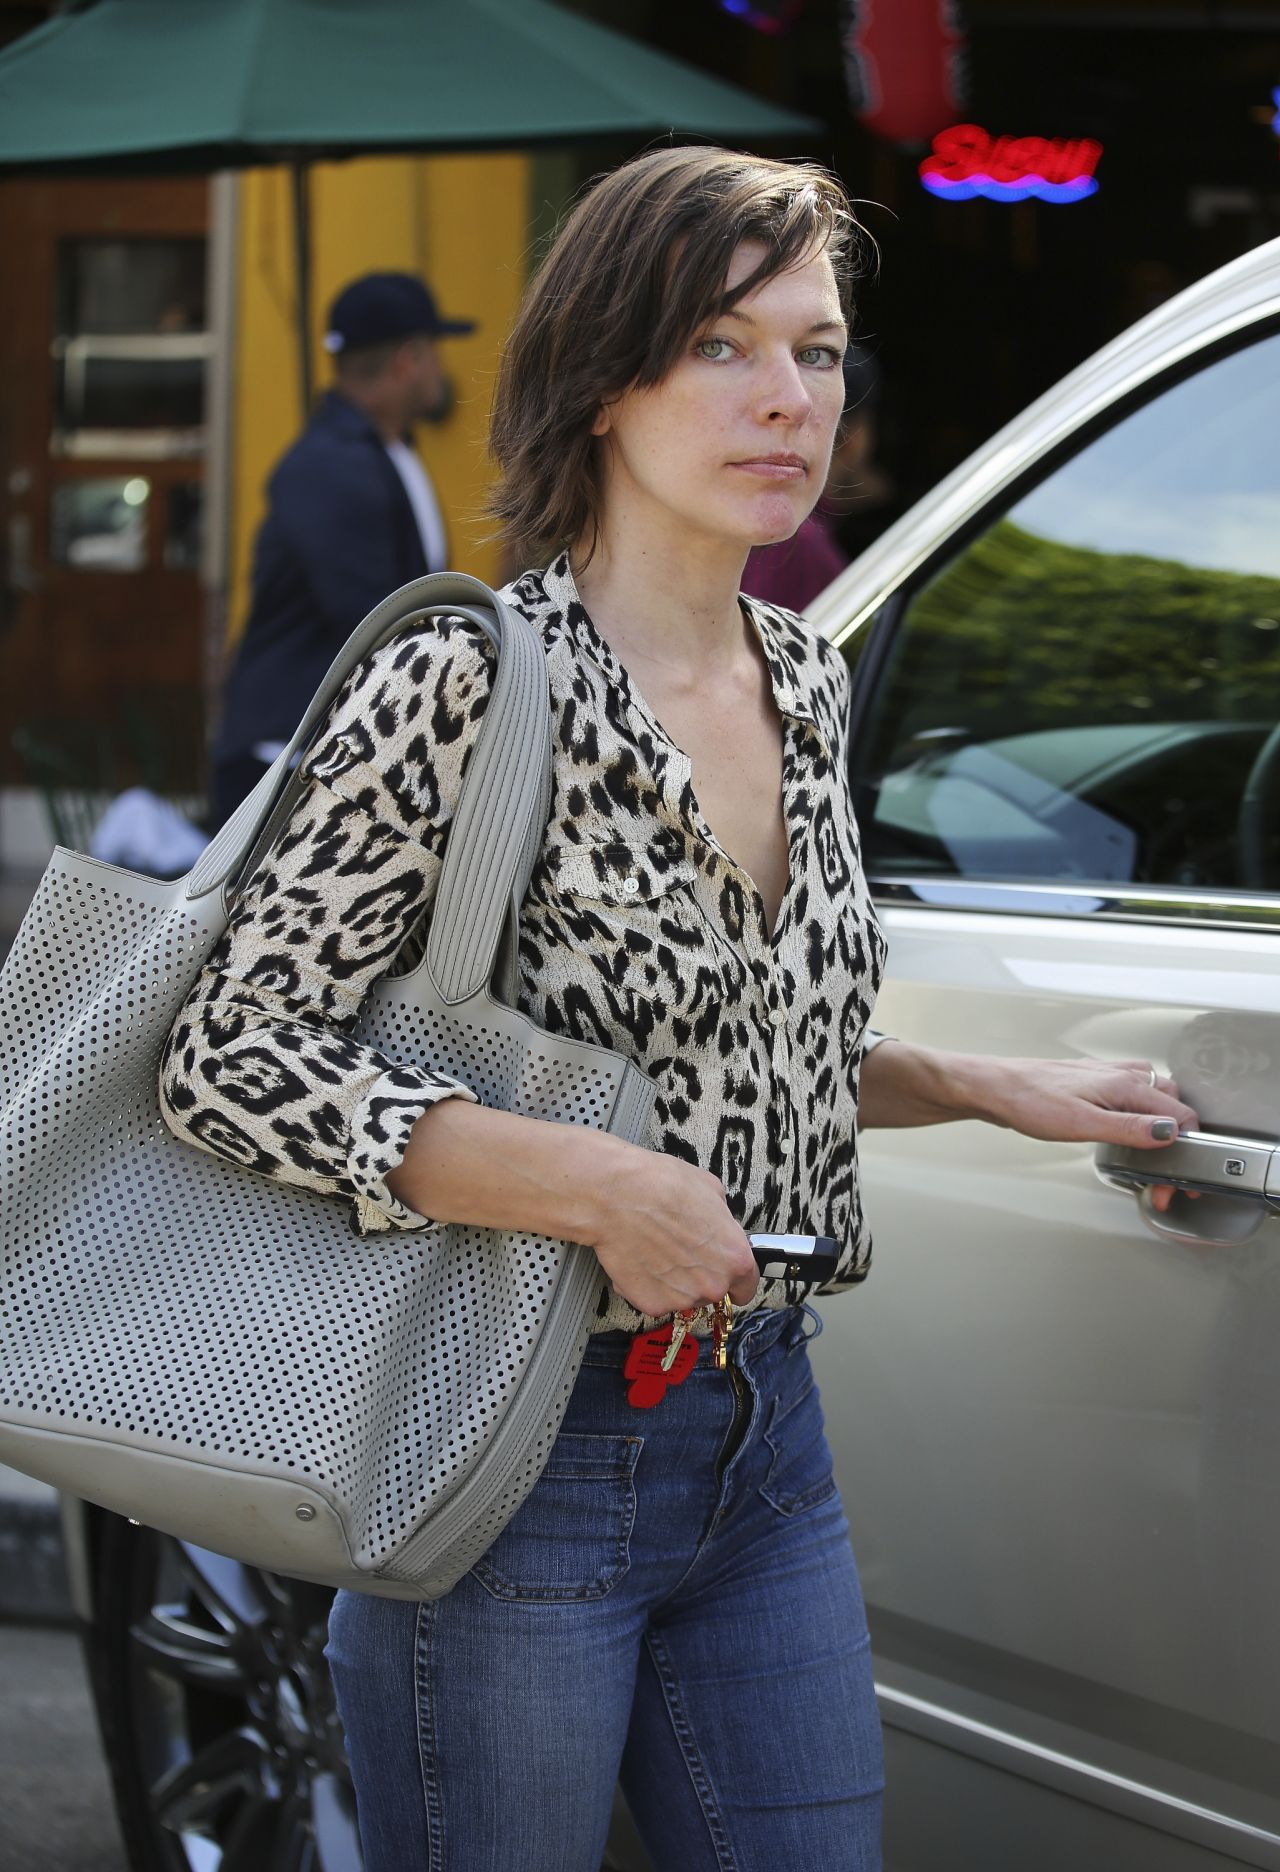 milla jovovich urban outfit strolling out in los angeles